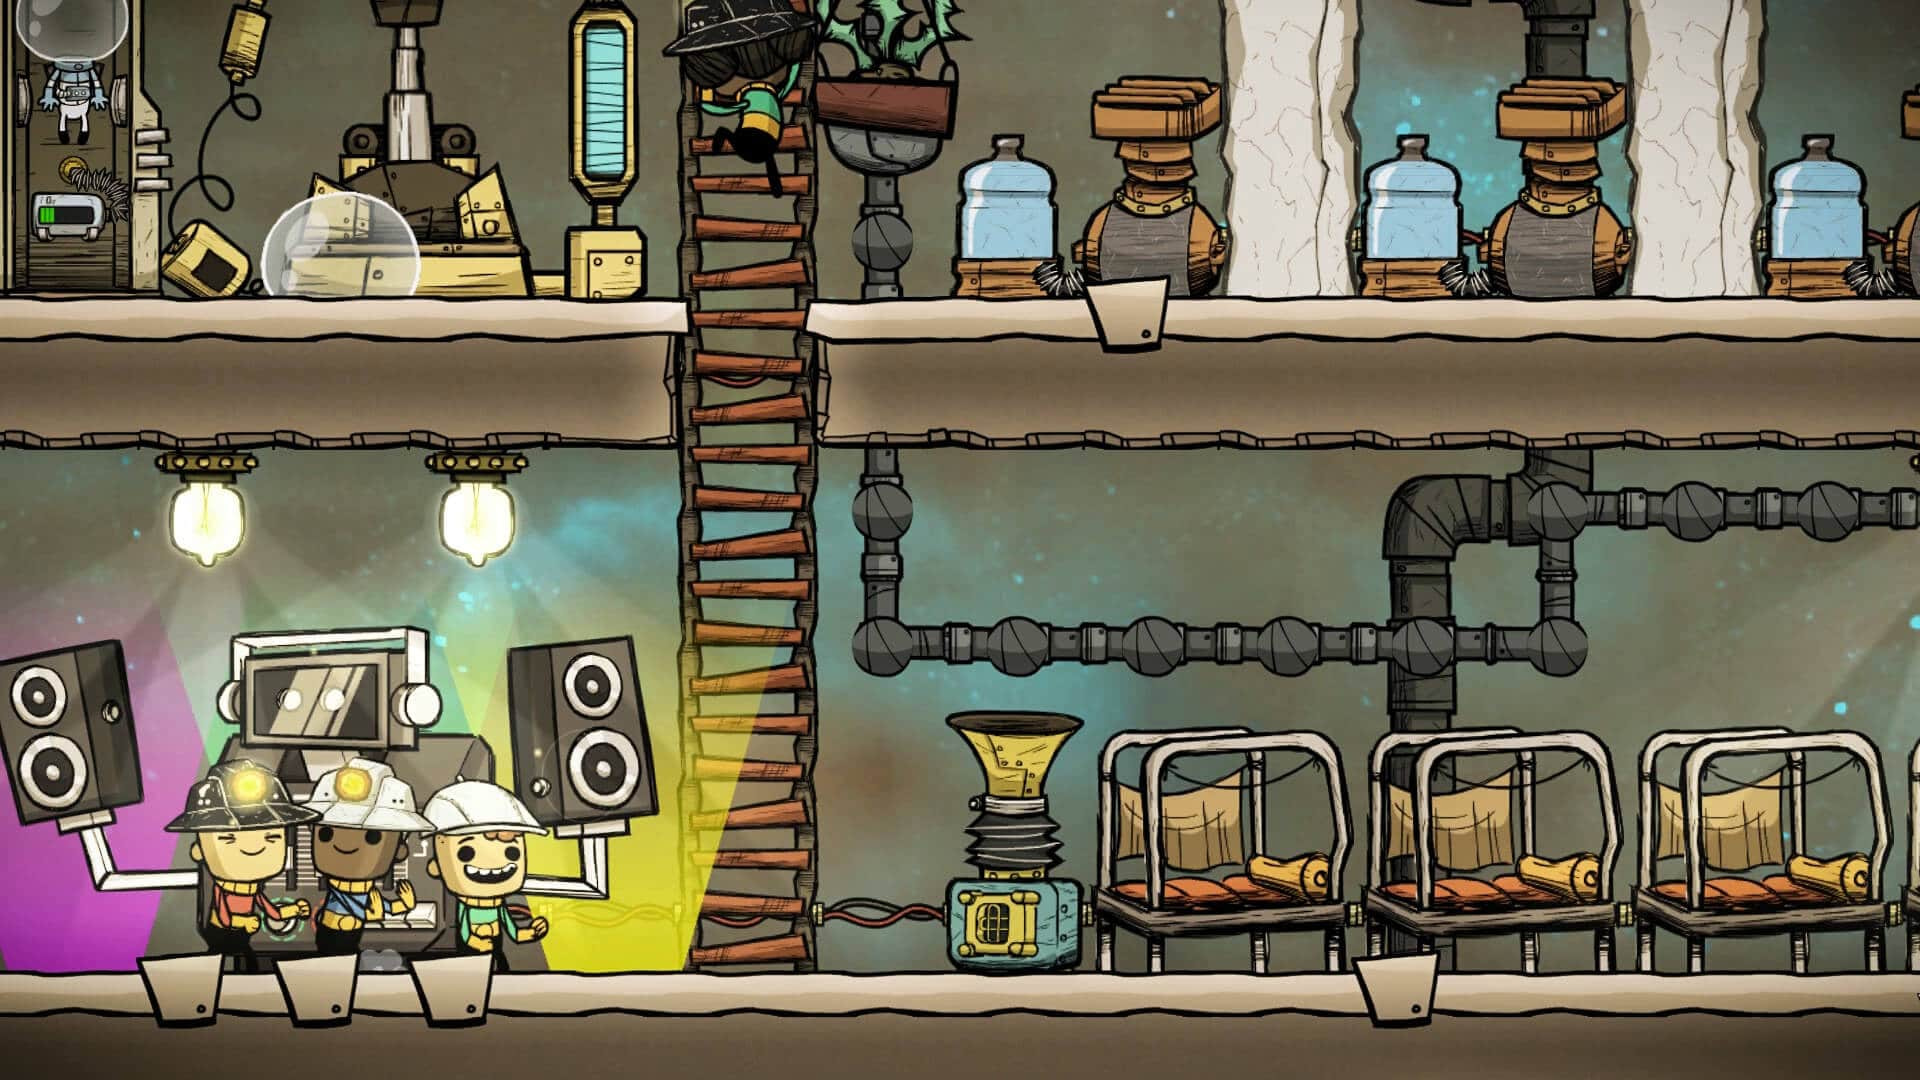 7 Of The Best Similar Games Like Rimworld To Play